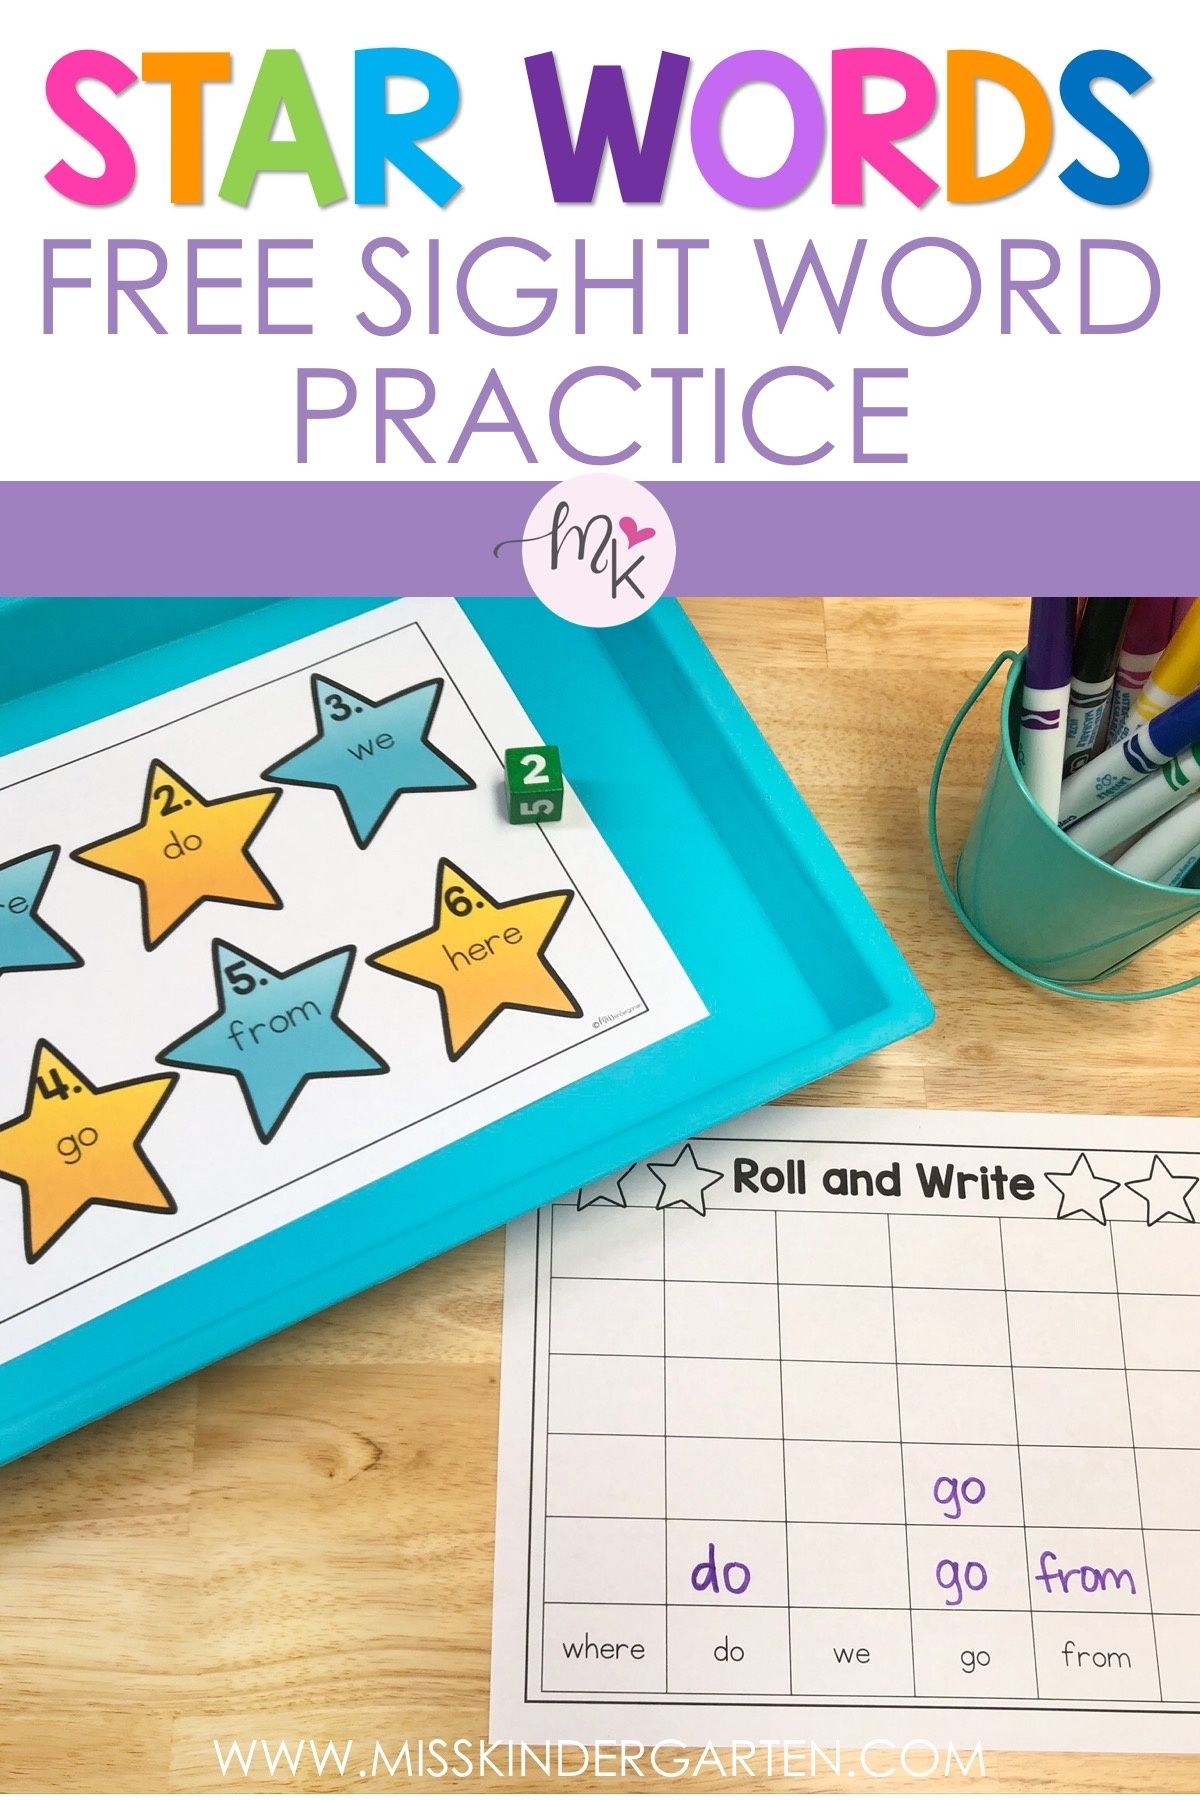 Free Sight Words Practice | Sight words, Sight word ...